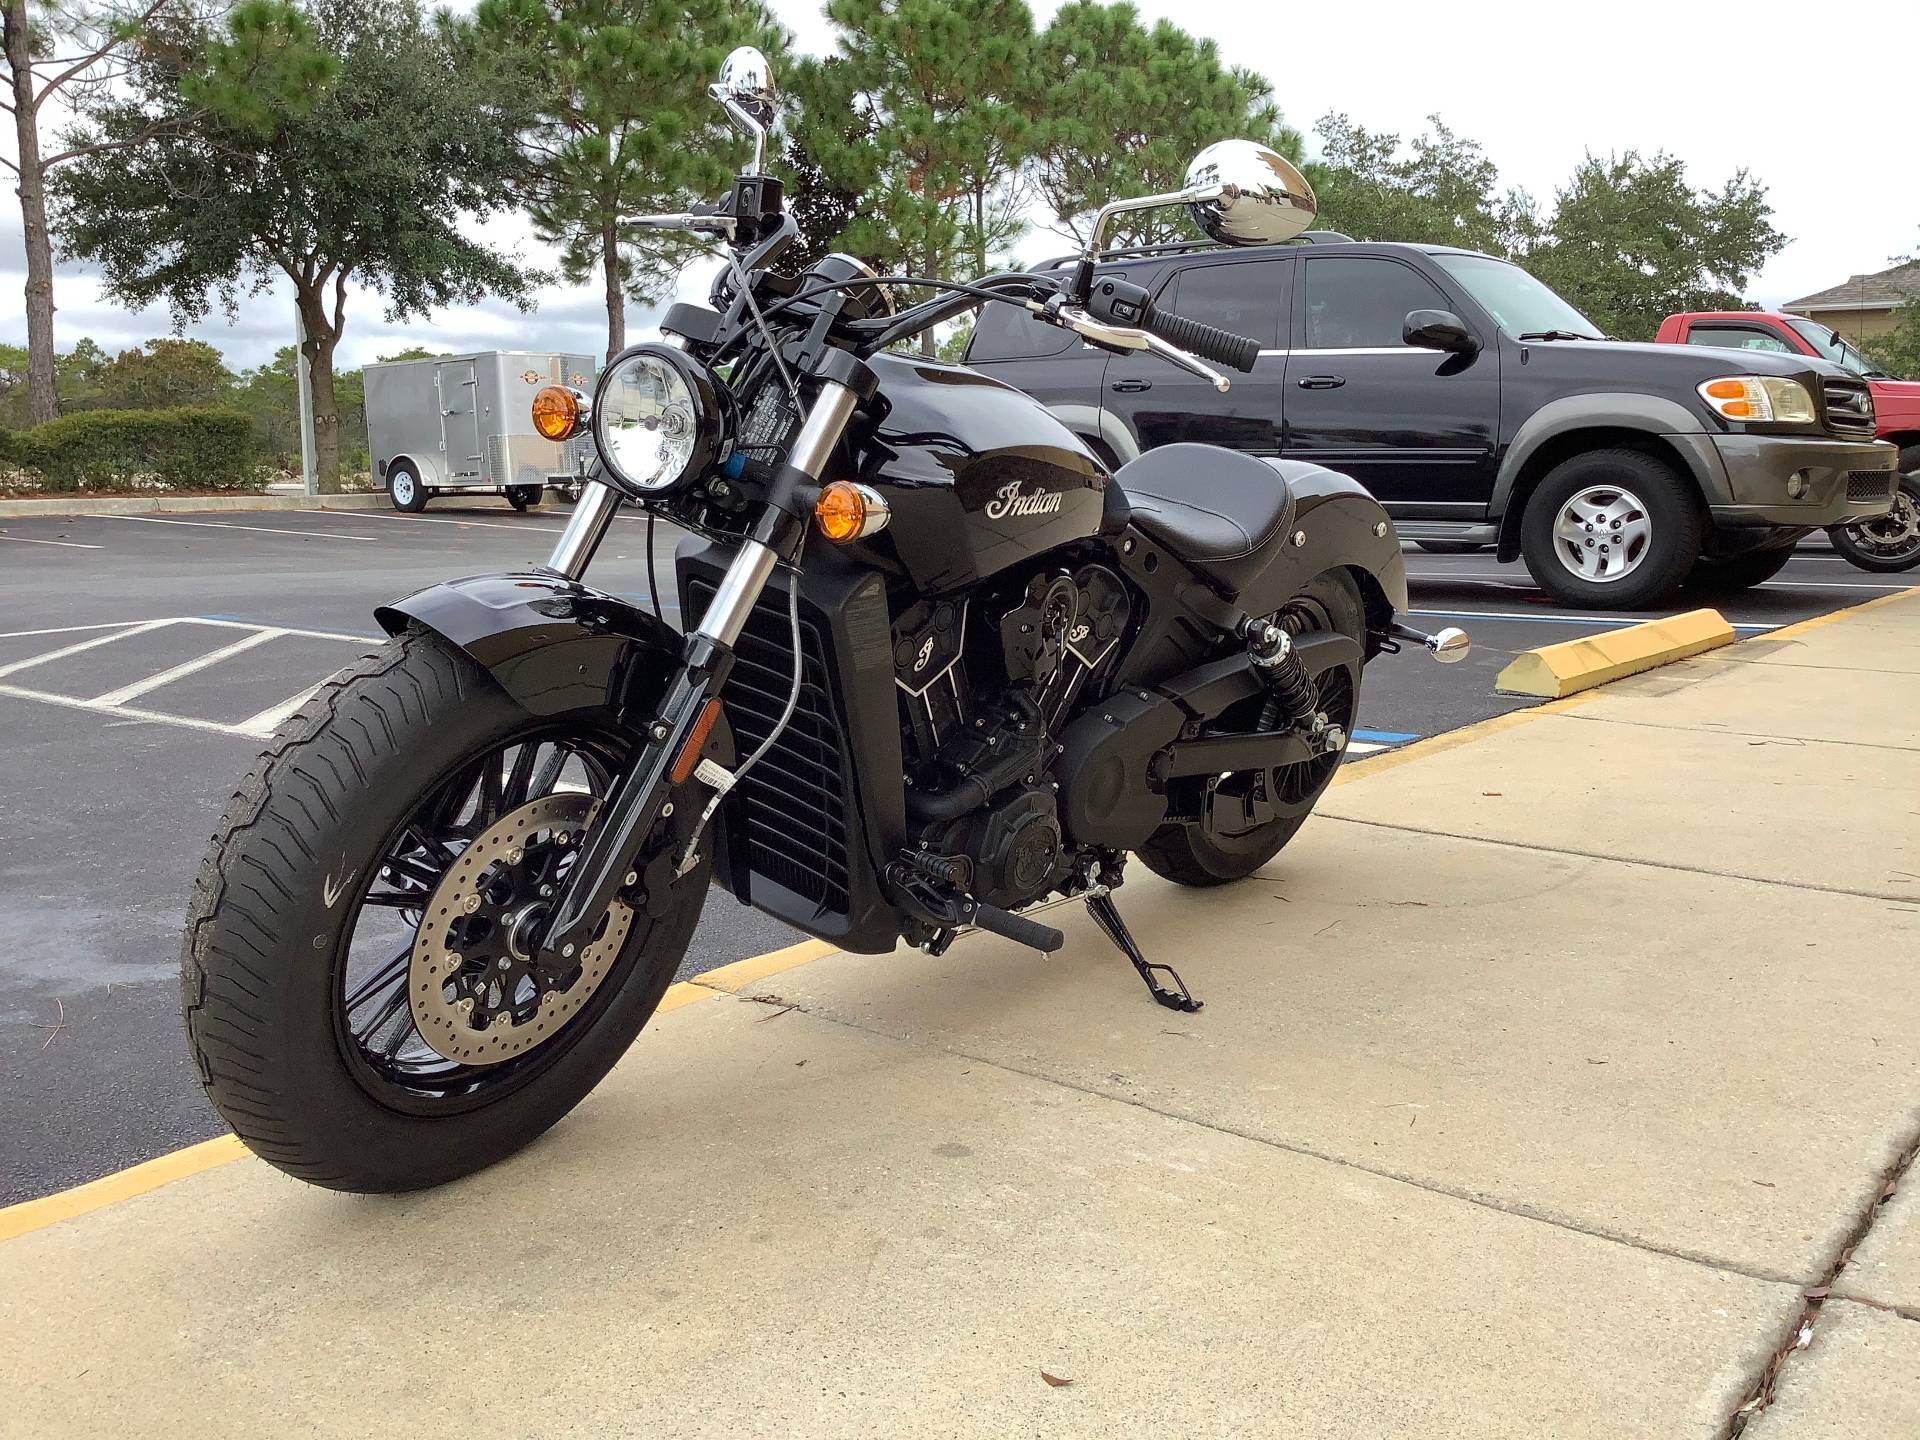 2021 Indian SCOUT 60 in Panama City Beach, Florida - Photo 15